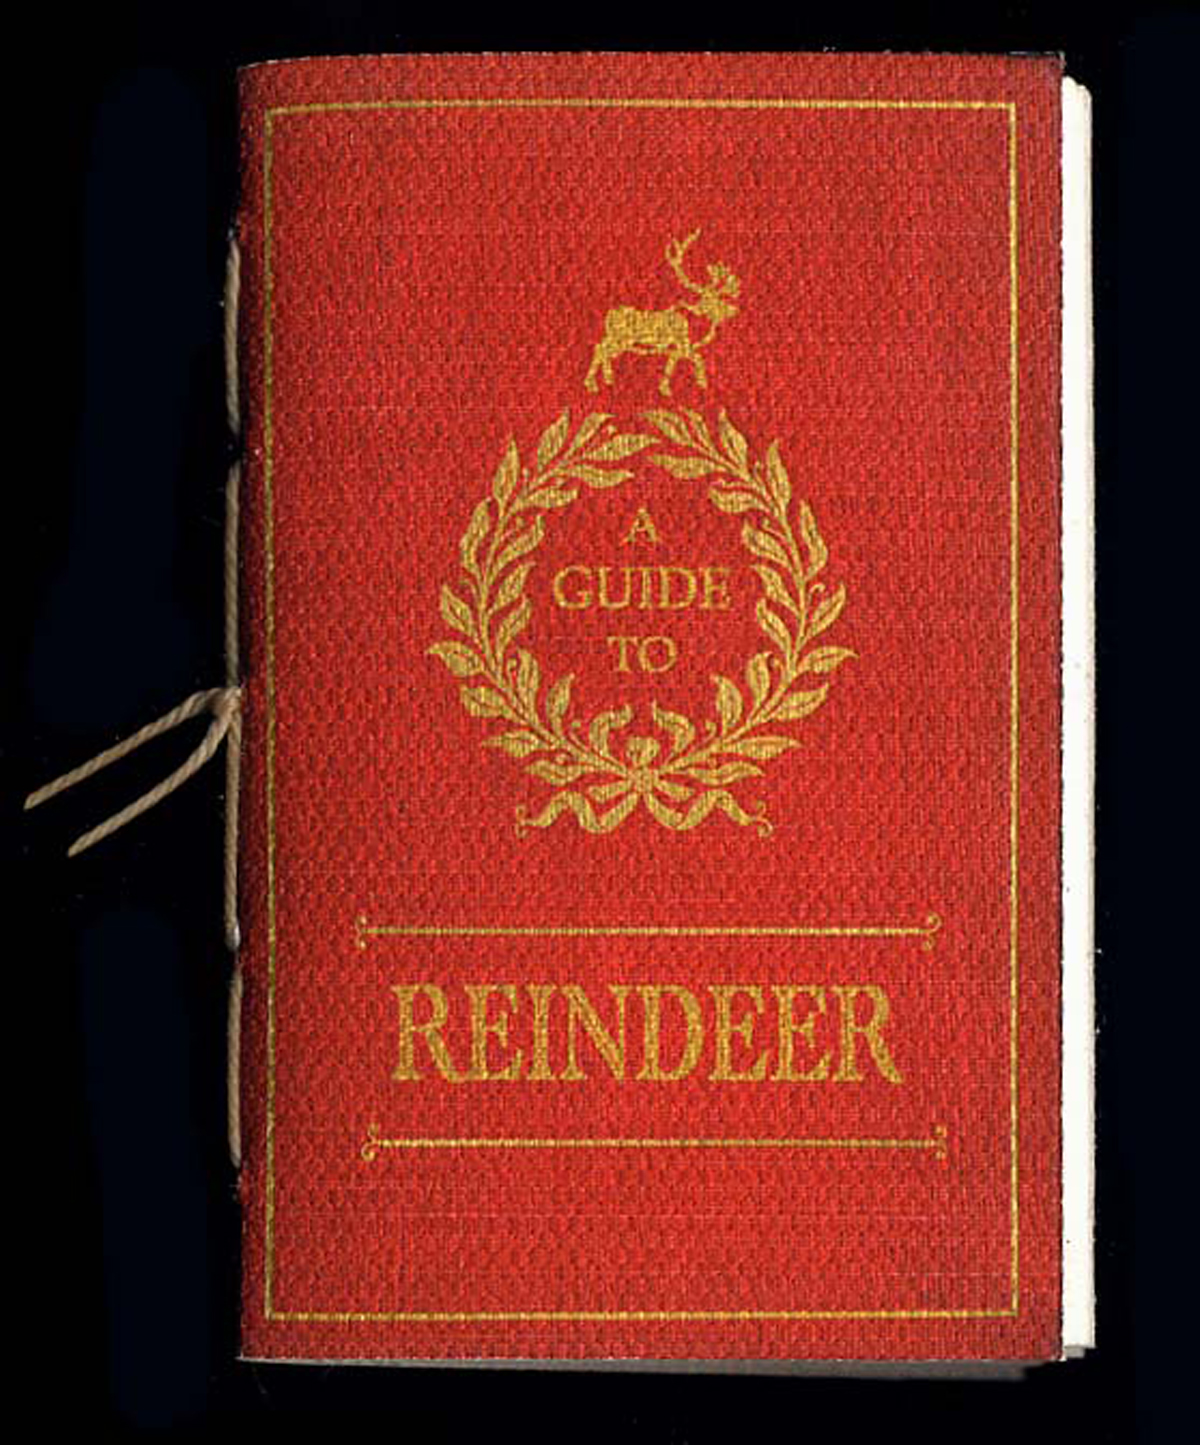 A Guide to Reindeer